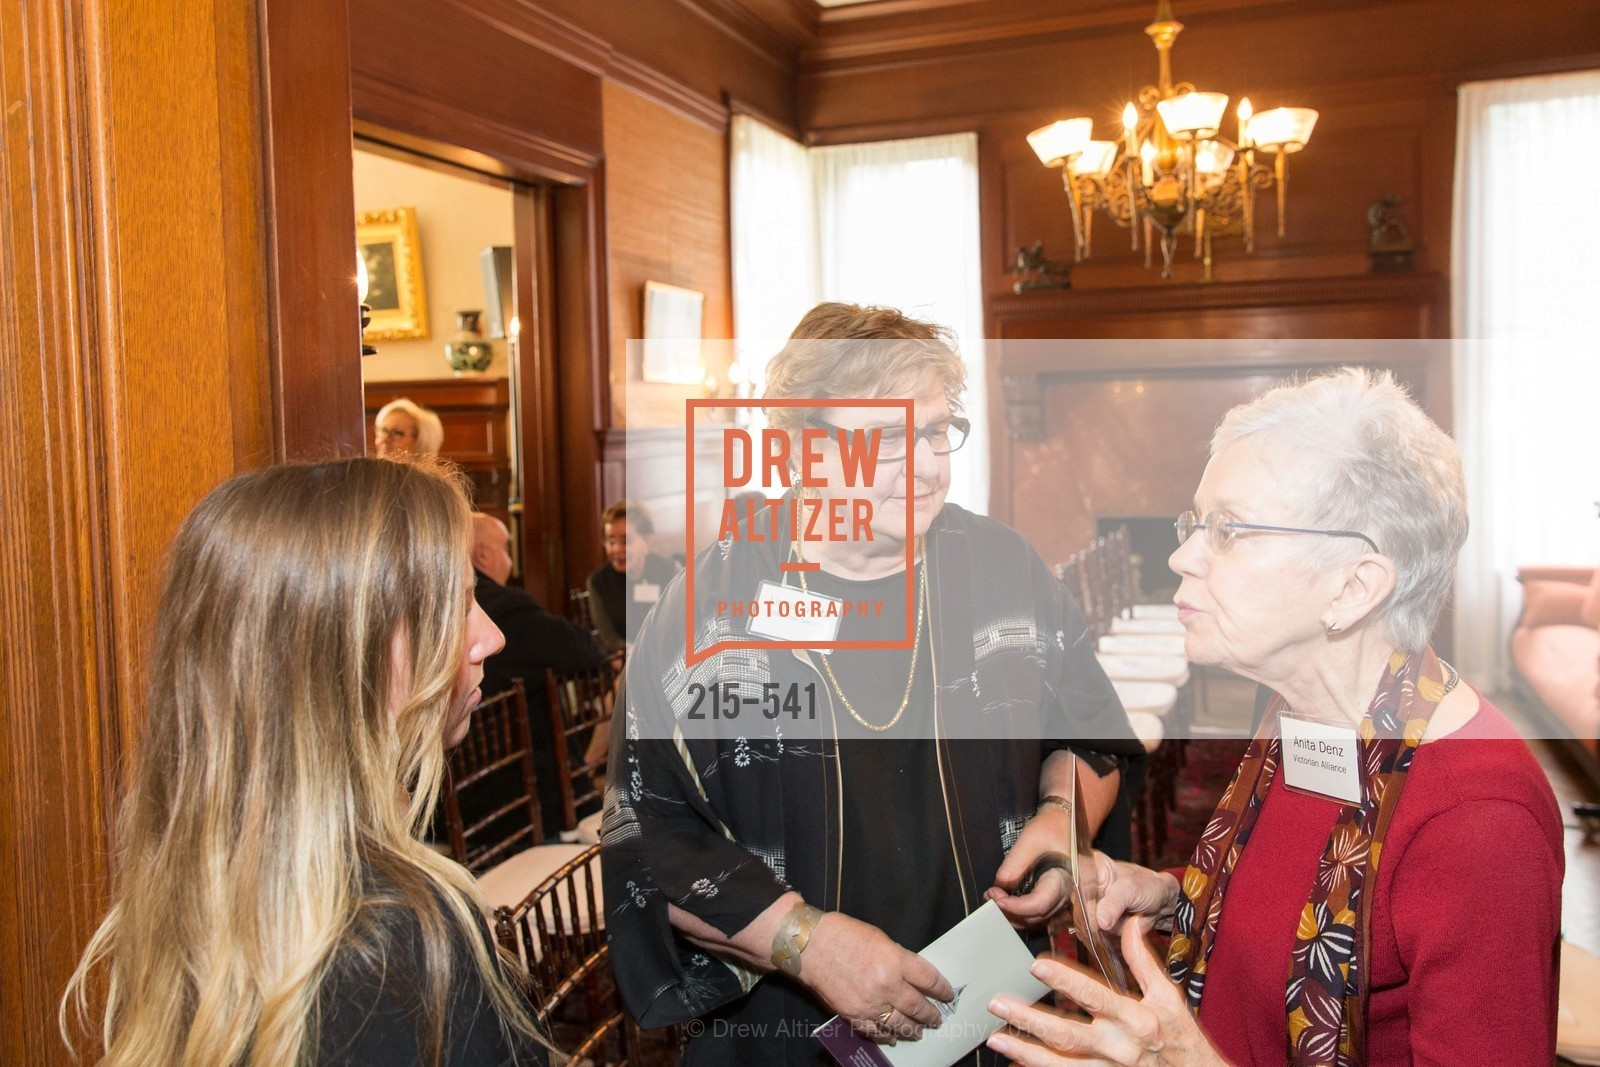 Linda Jo Fitz, Anita Denz, Ceremony Inaugurating the Campaign for San Francisco Heritage & Haas-Lilienthal House, Haas-Lilienthal House. 2007 Franklin Street, November 18th, 2015,Drew Altizer, Drew Altizer Photography, full-service agency, private events, San Francisco photographer, photographer california